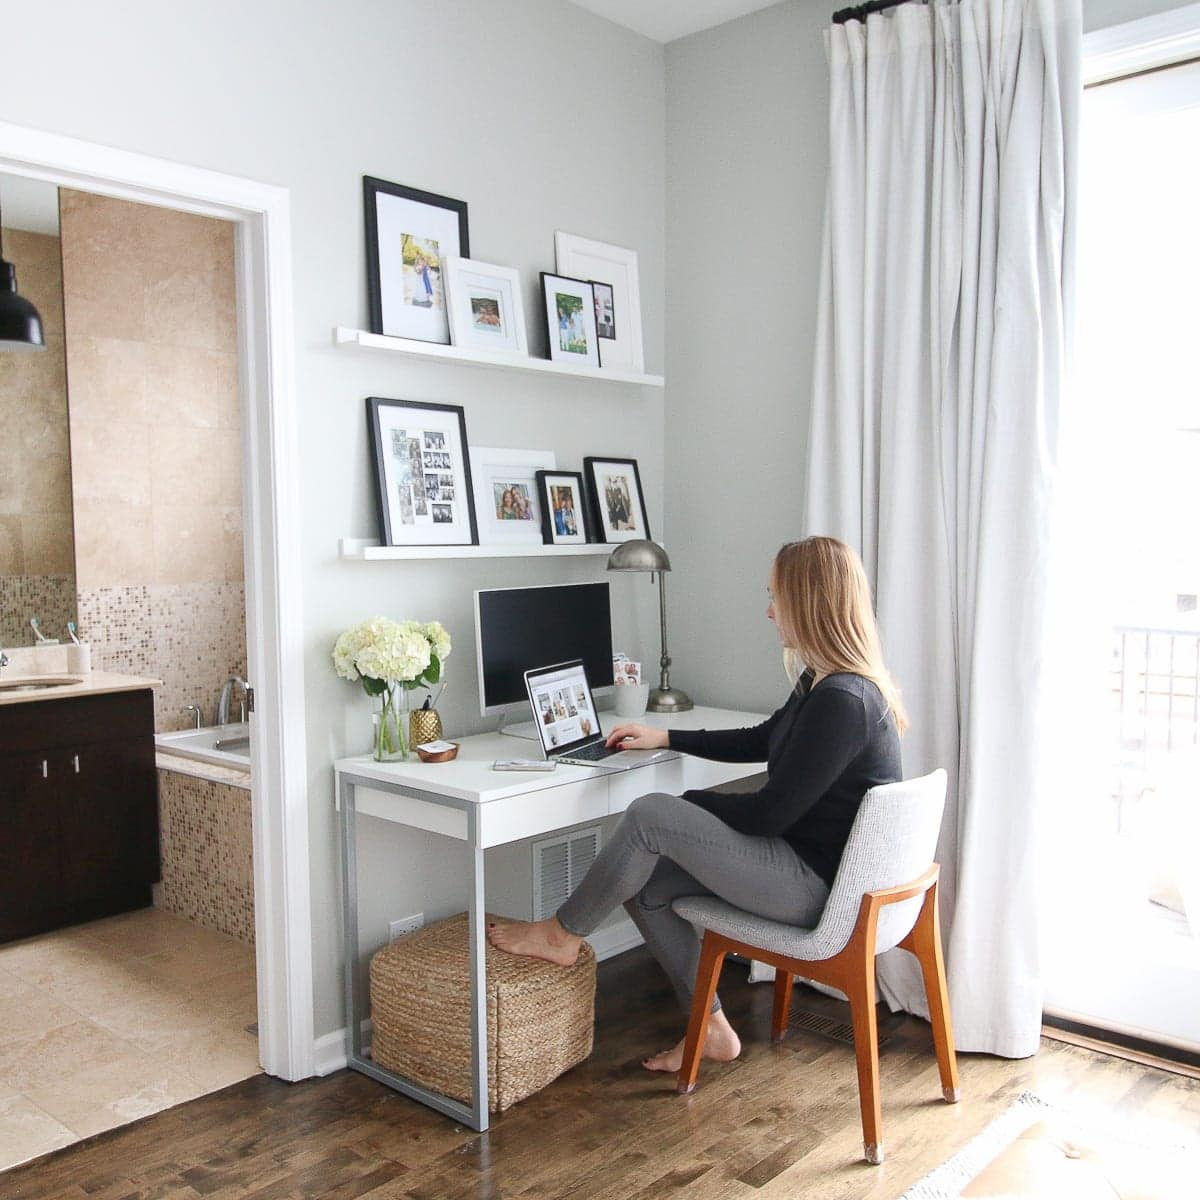 Create a designated work space in your house if you're working from home.